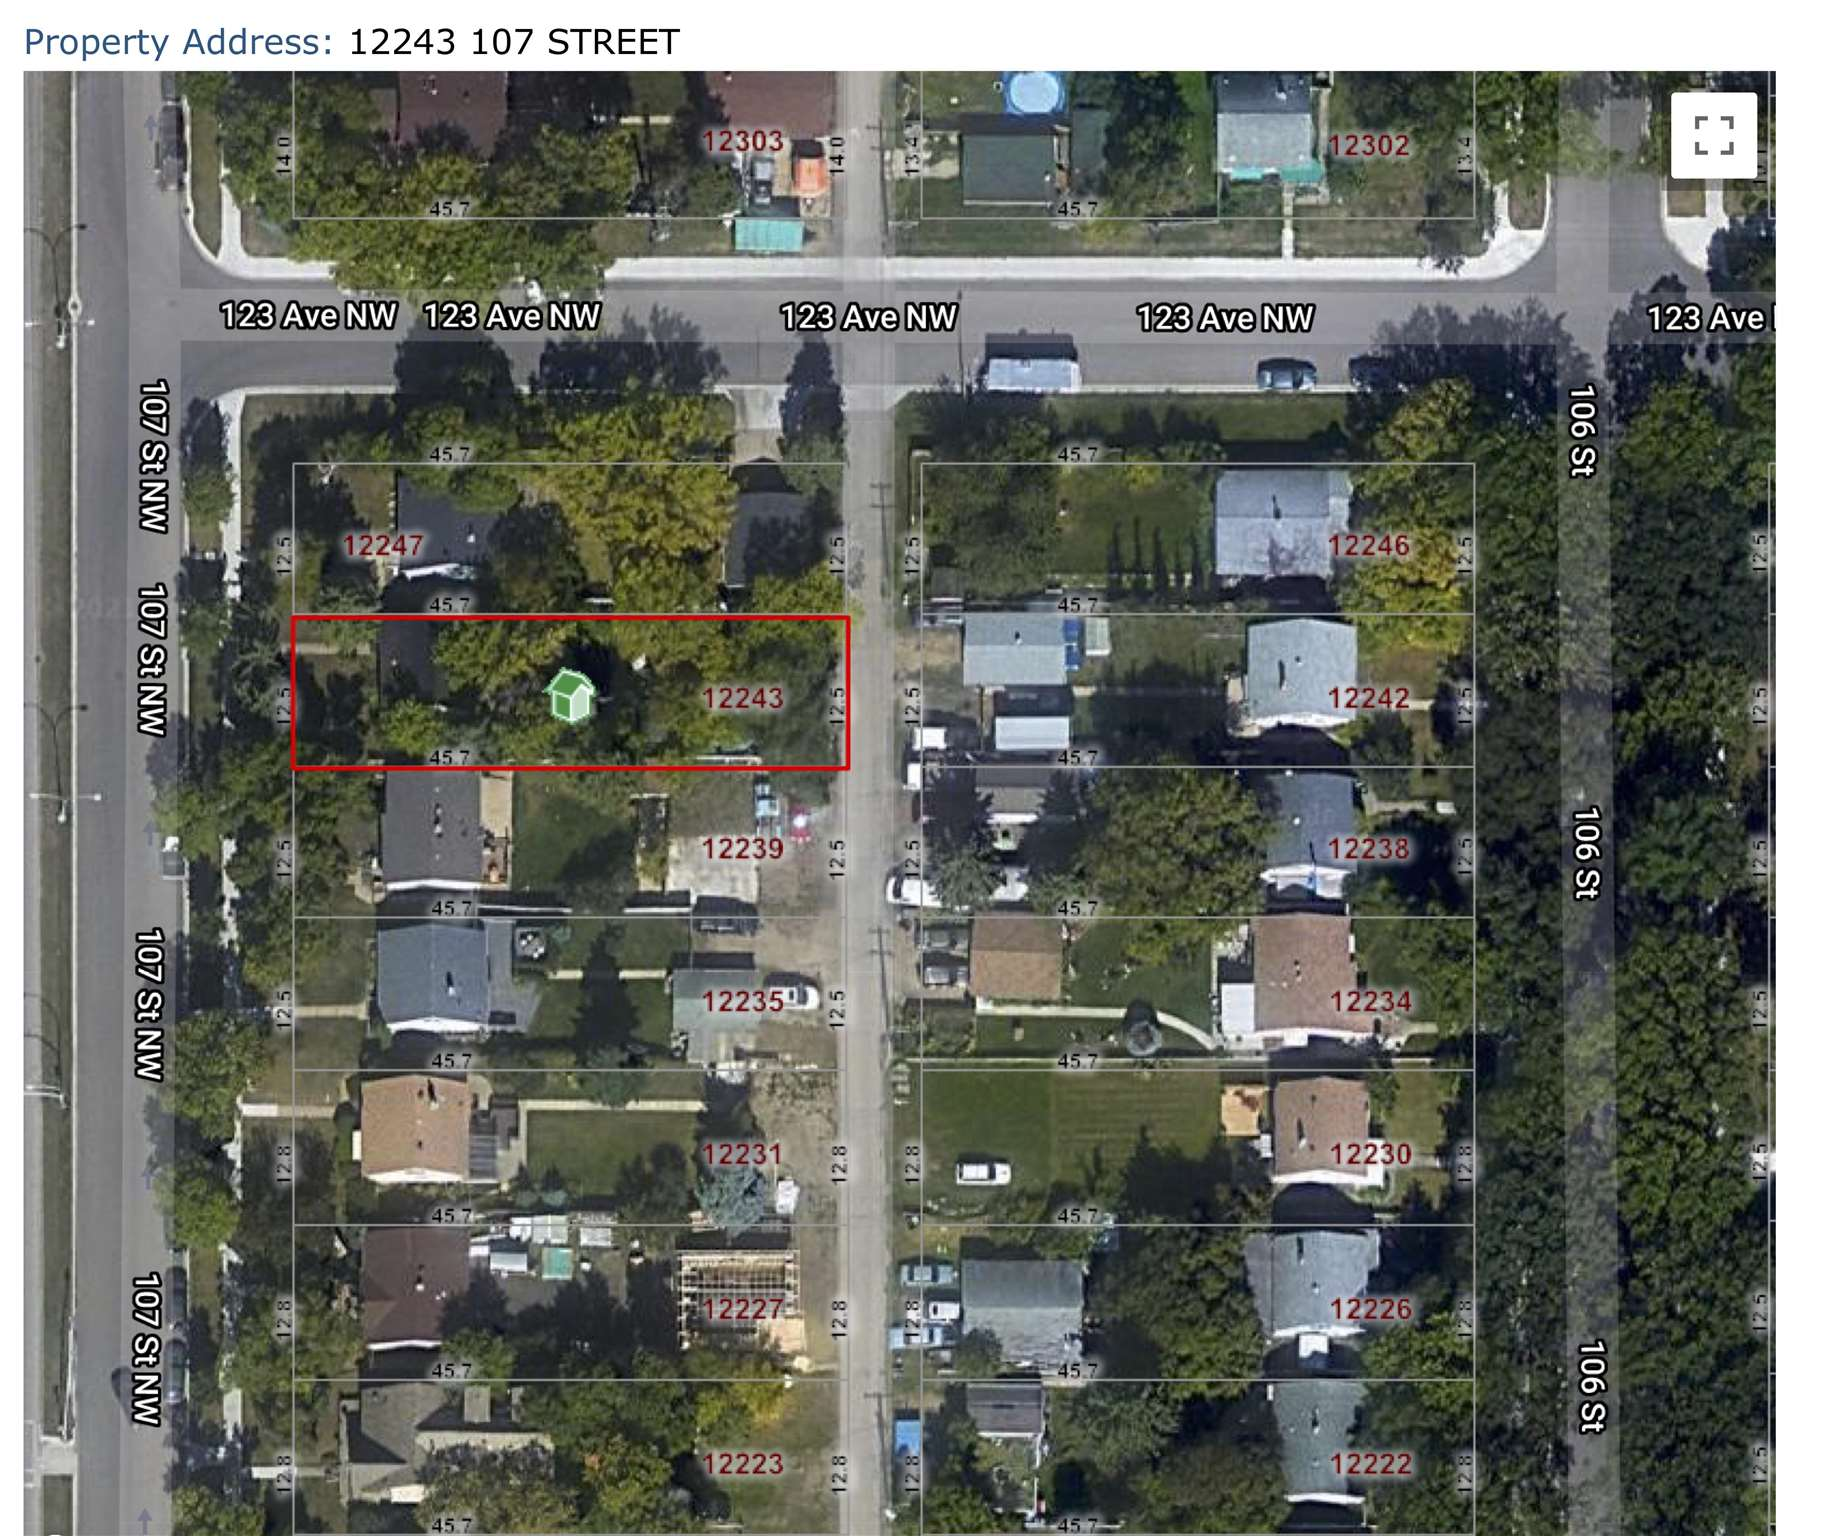 """Investment Opportunity near NAIT with this 41' x 150' lot.  This property has tremendous potential for infill and a great location being close to Kingsway LRT station, shopping & quick access to Yellowhead, downtown & Grant Macewan, but is being sold """"as-is, where-is"""" and at lot value.  It is currently zoned for RF1."""